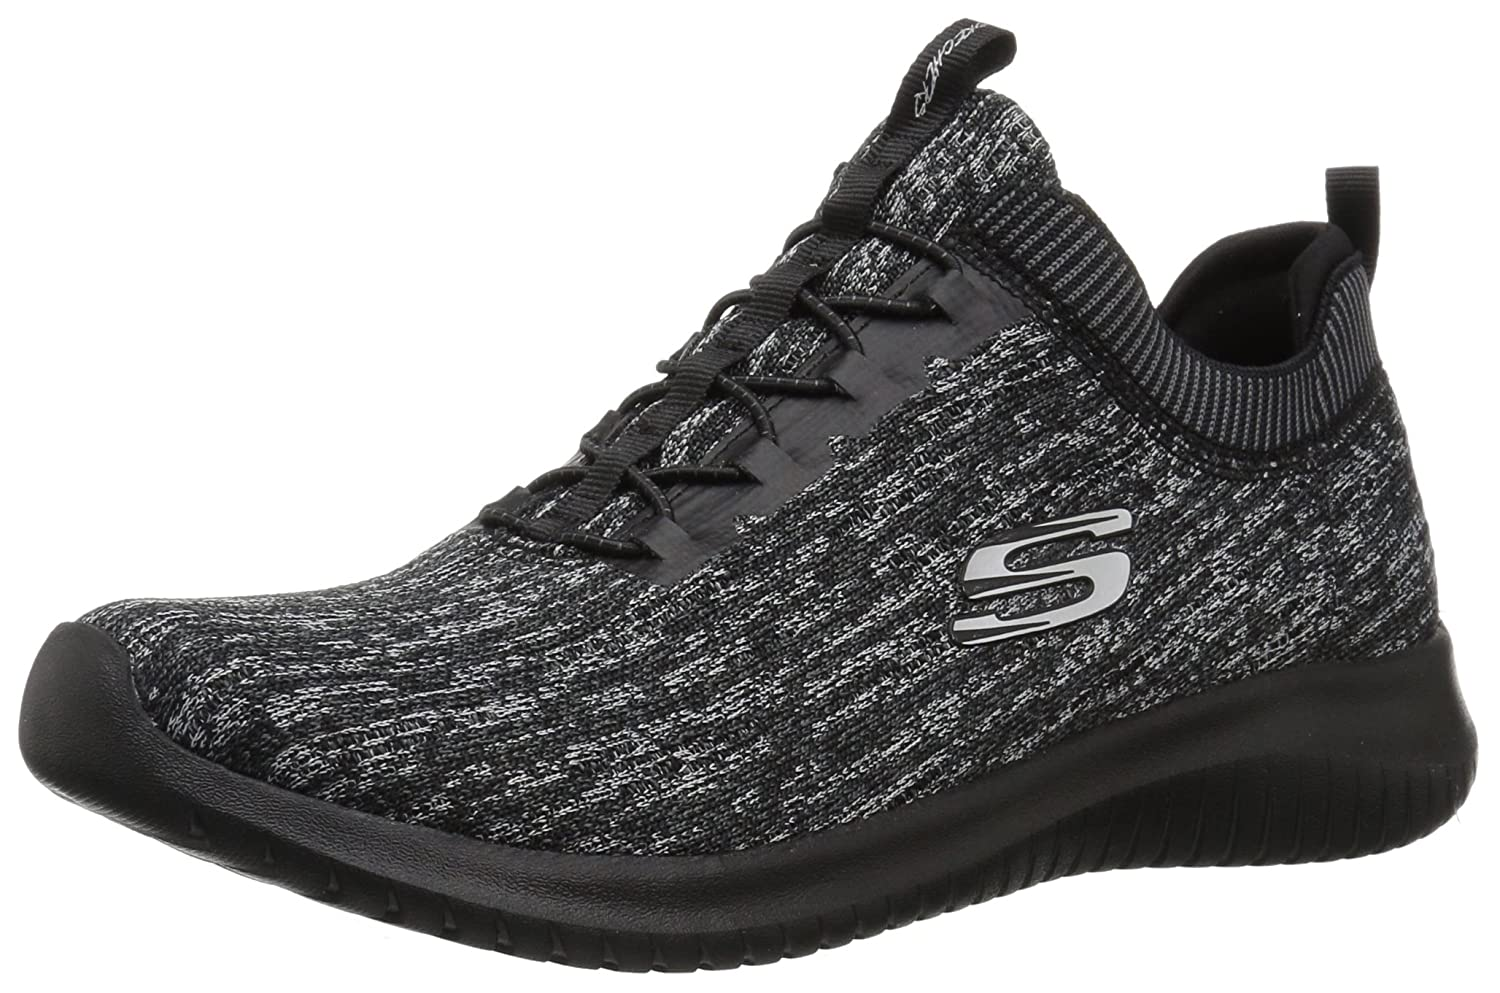 Skechers Women's Ultra Flex Bright Horizon Sneaker B01MS9T5OT 6.5 B(M) US|Black Charcoal